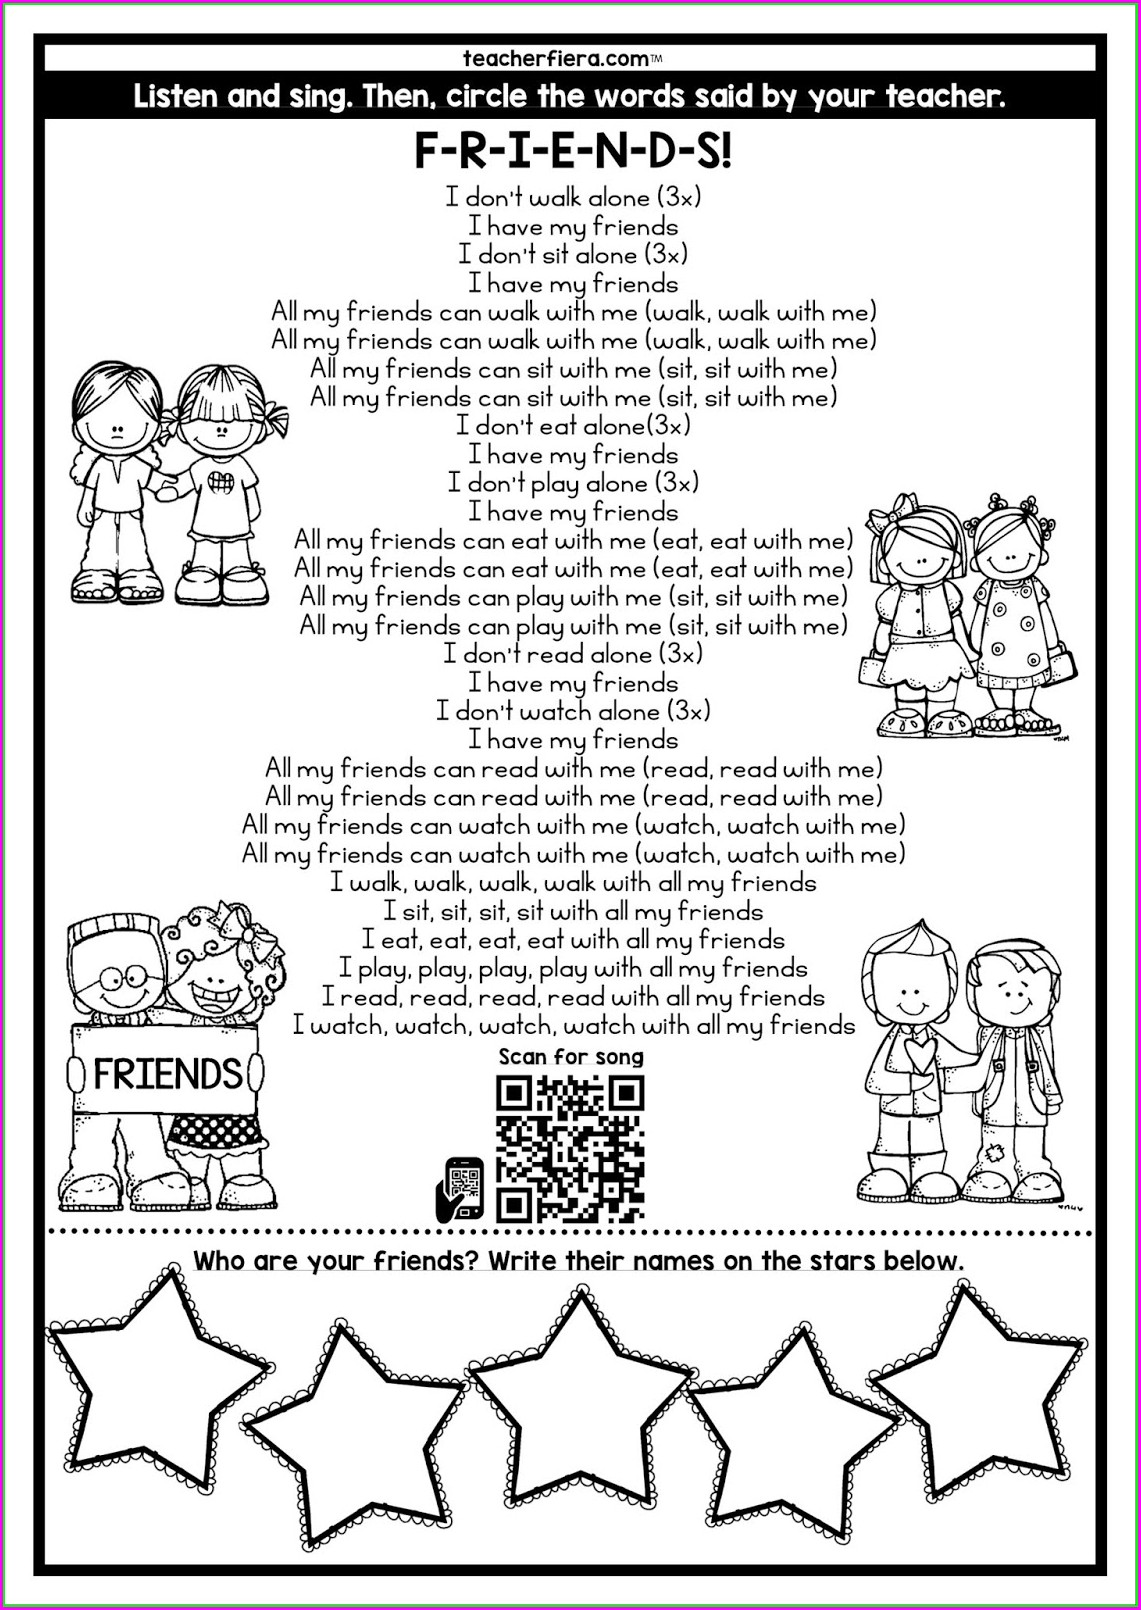 Grade 4 English Comprehension Worksheet